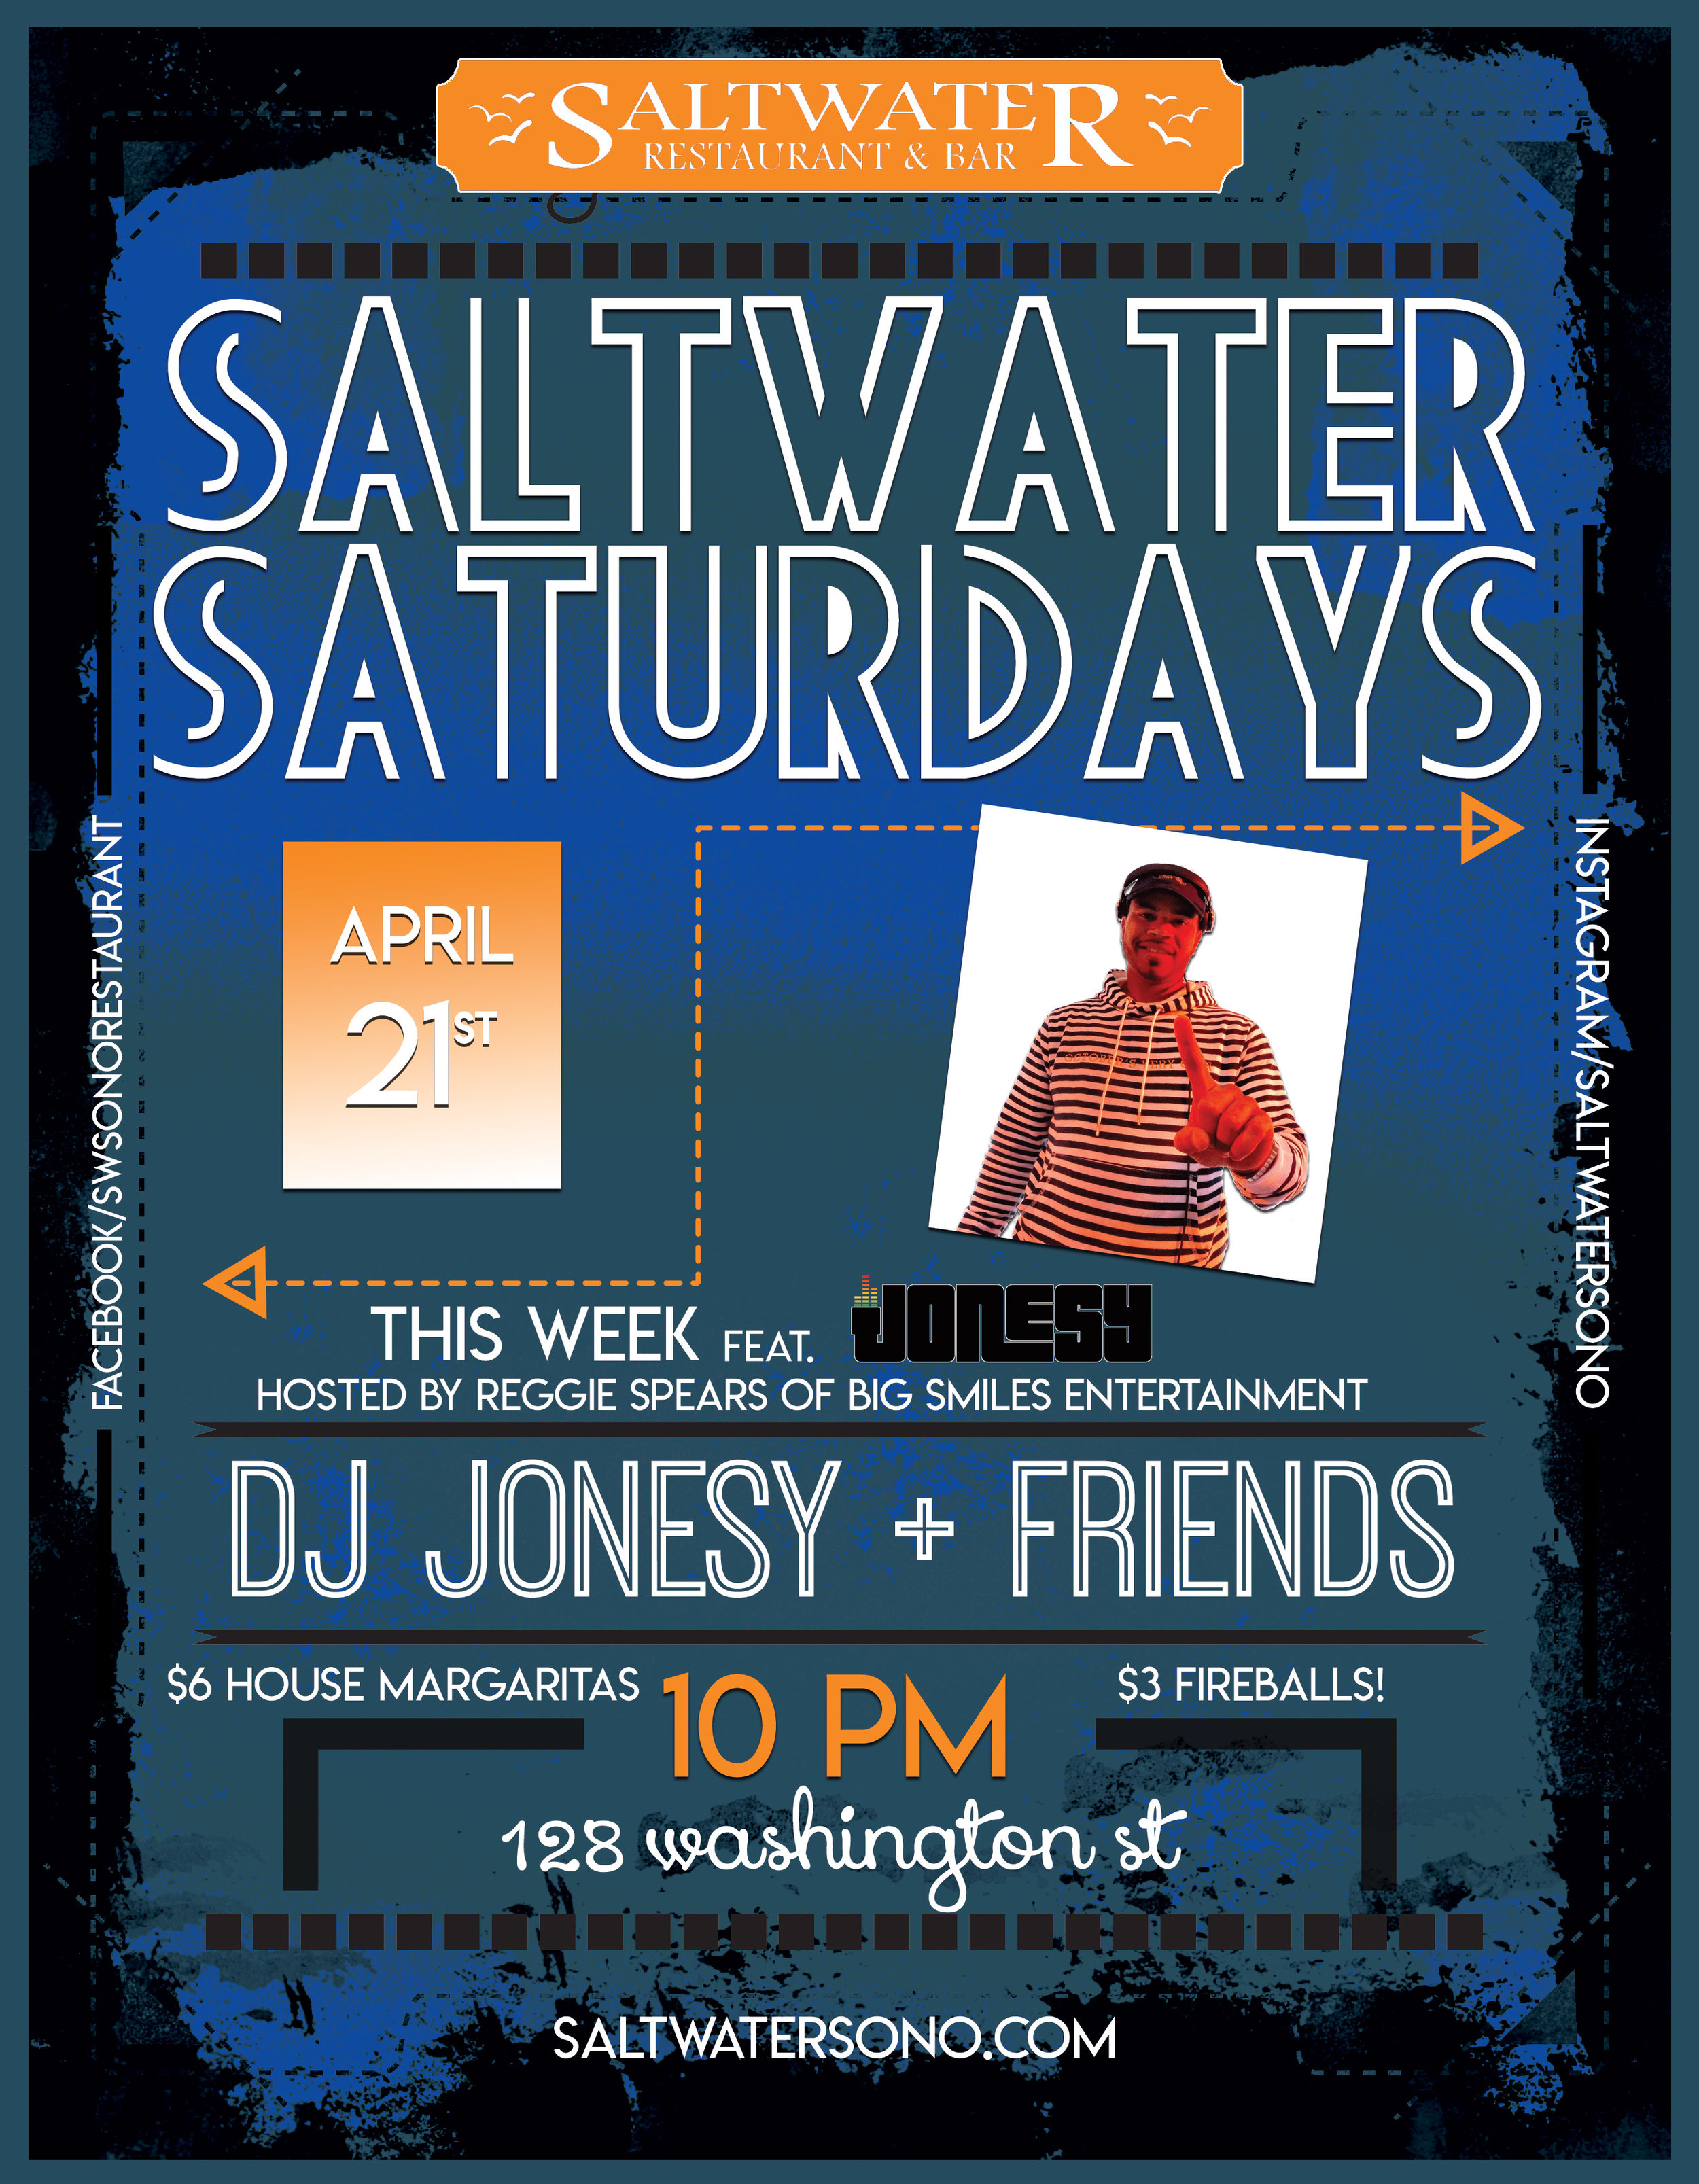 saltwater-saturdays-JONESYapril21.jpg